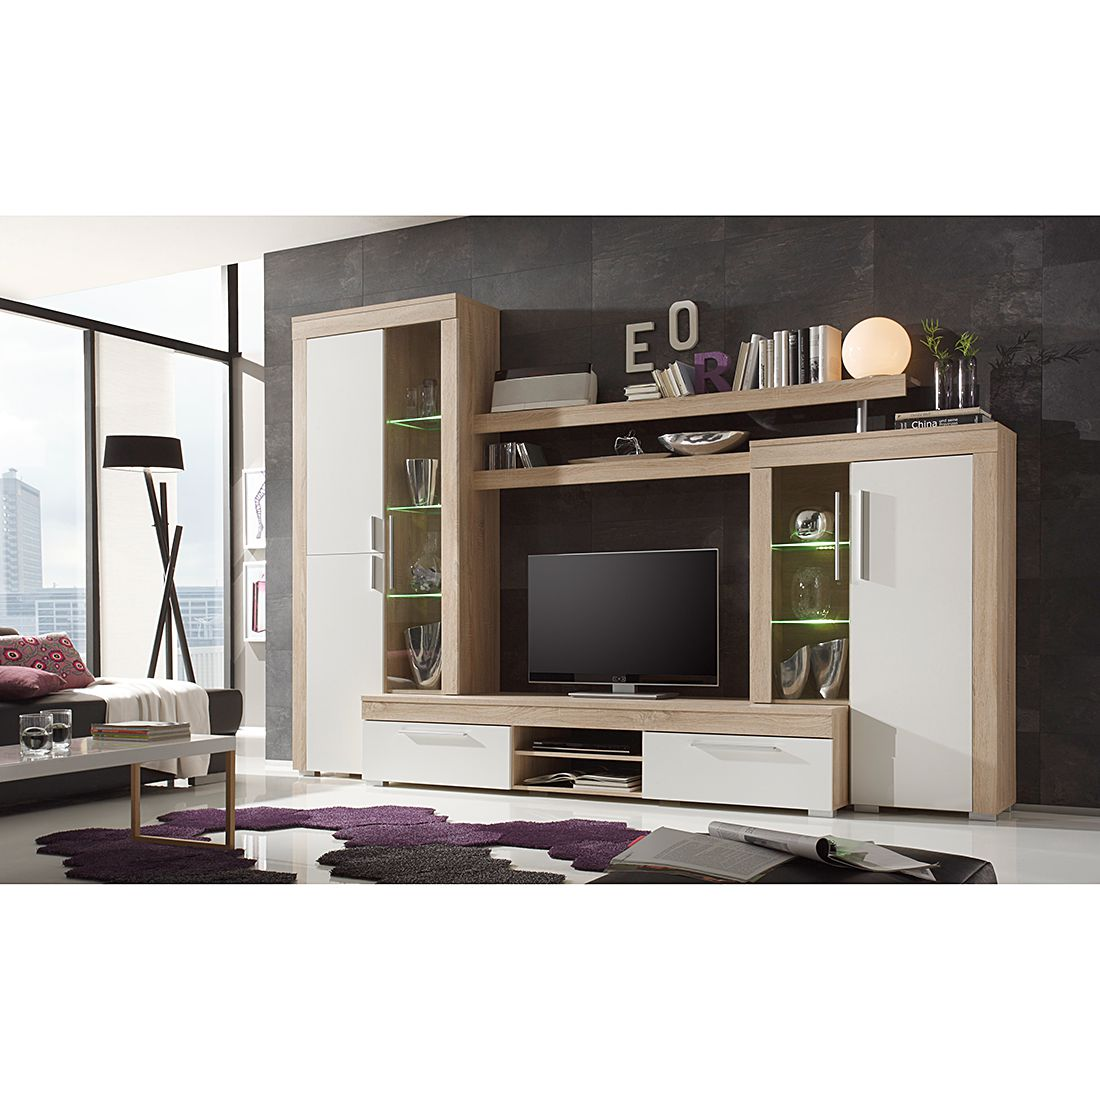 wohnwand bang 4 teilig inkl beleuchtung eiche. Black Bedroom Furniture Sets. Home Design Ideas